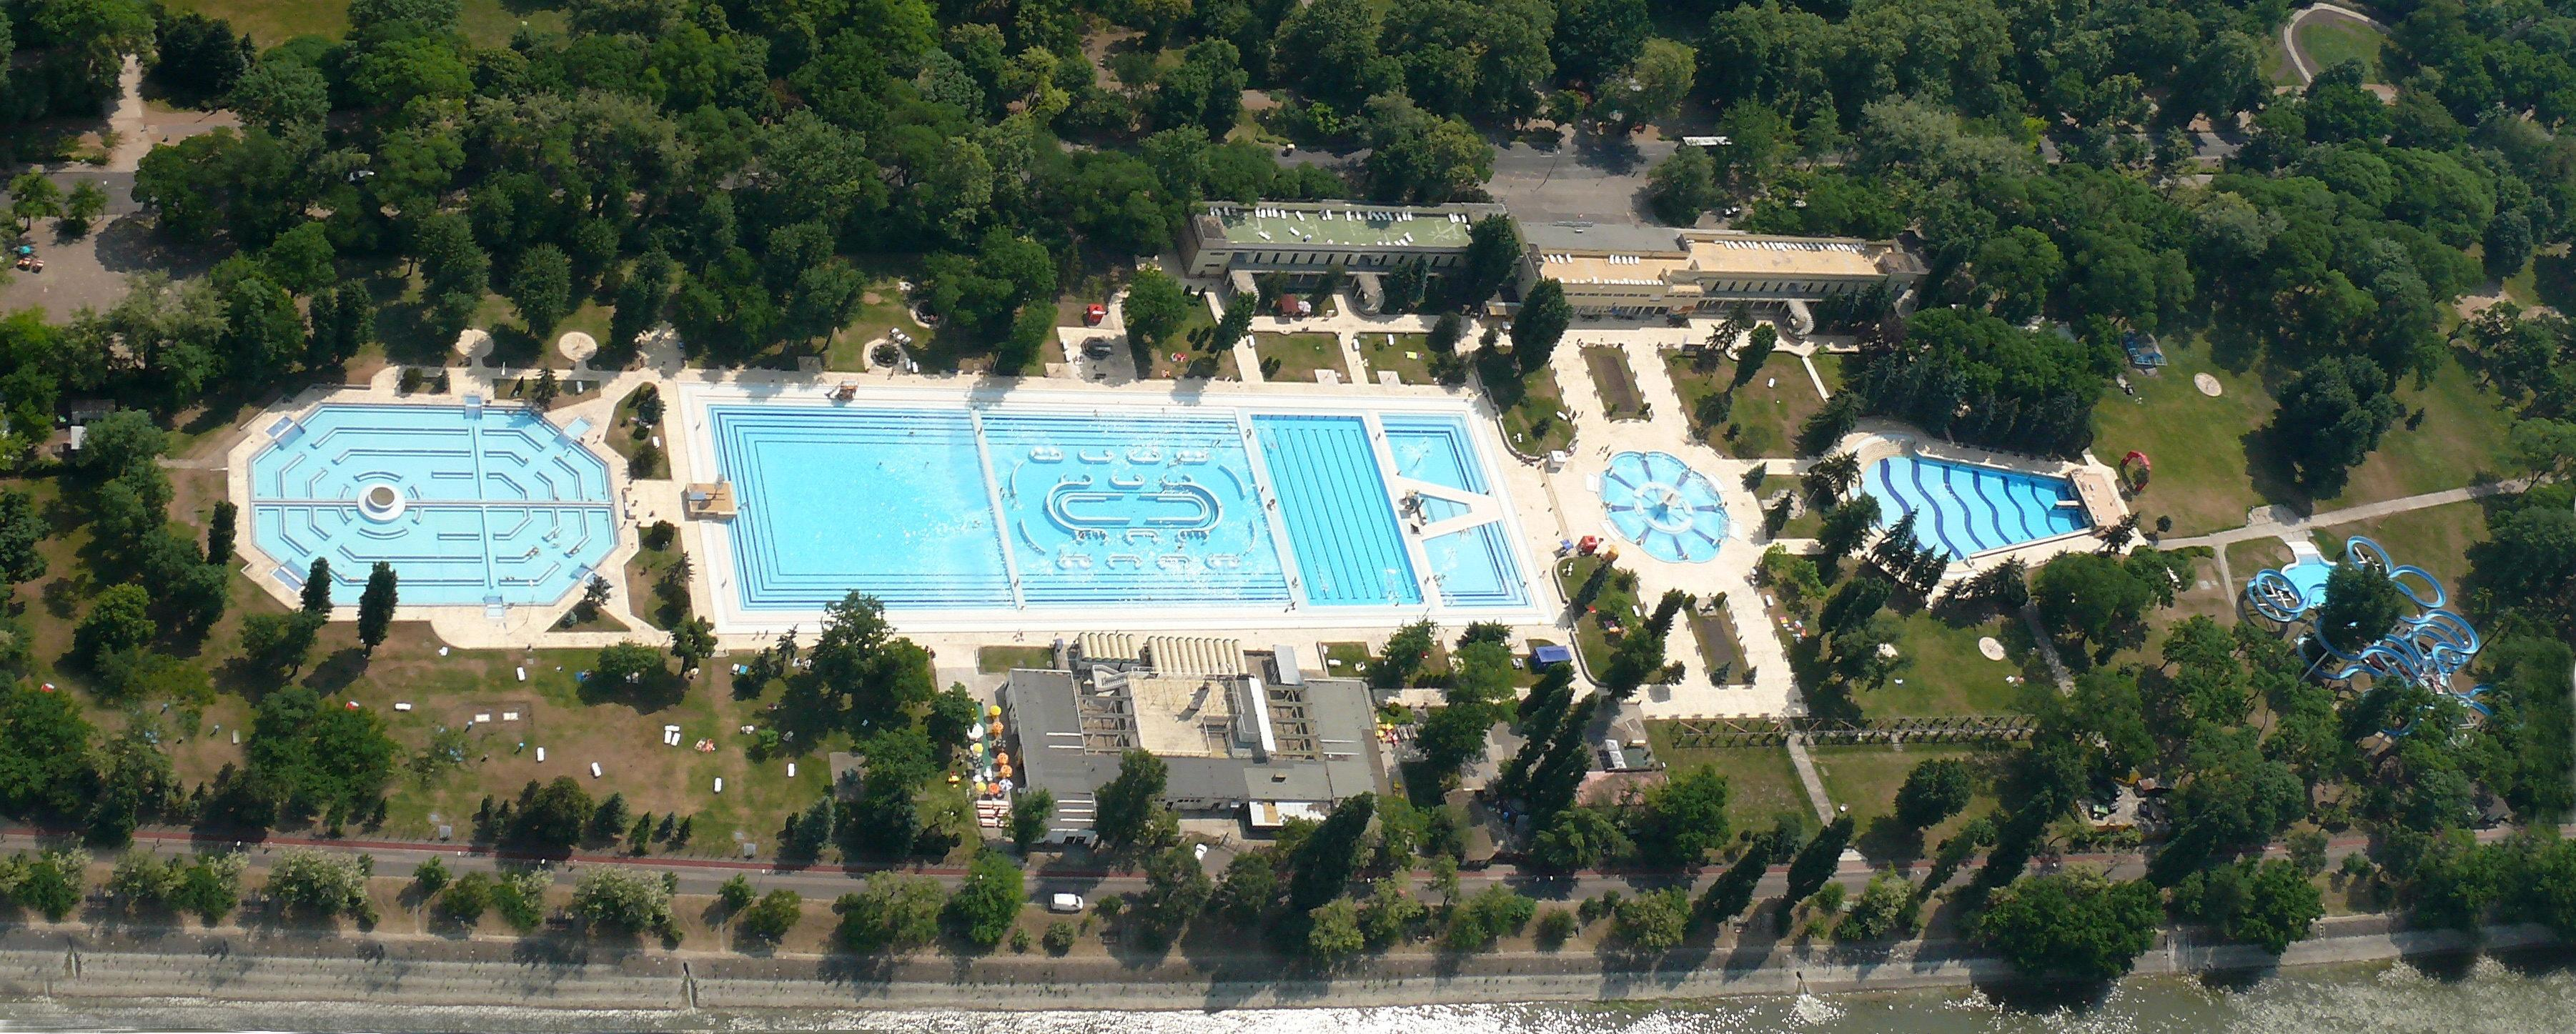 Swimming Complex On Margaret Island in Budapest Under Renovation